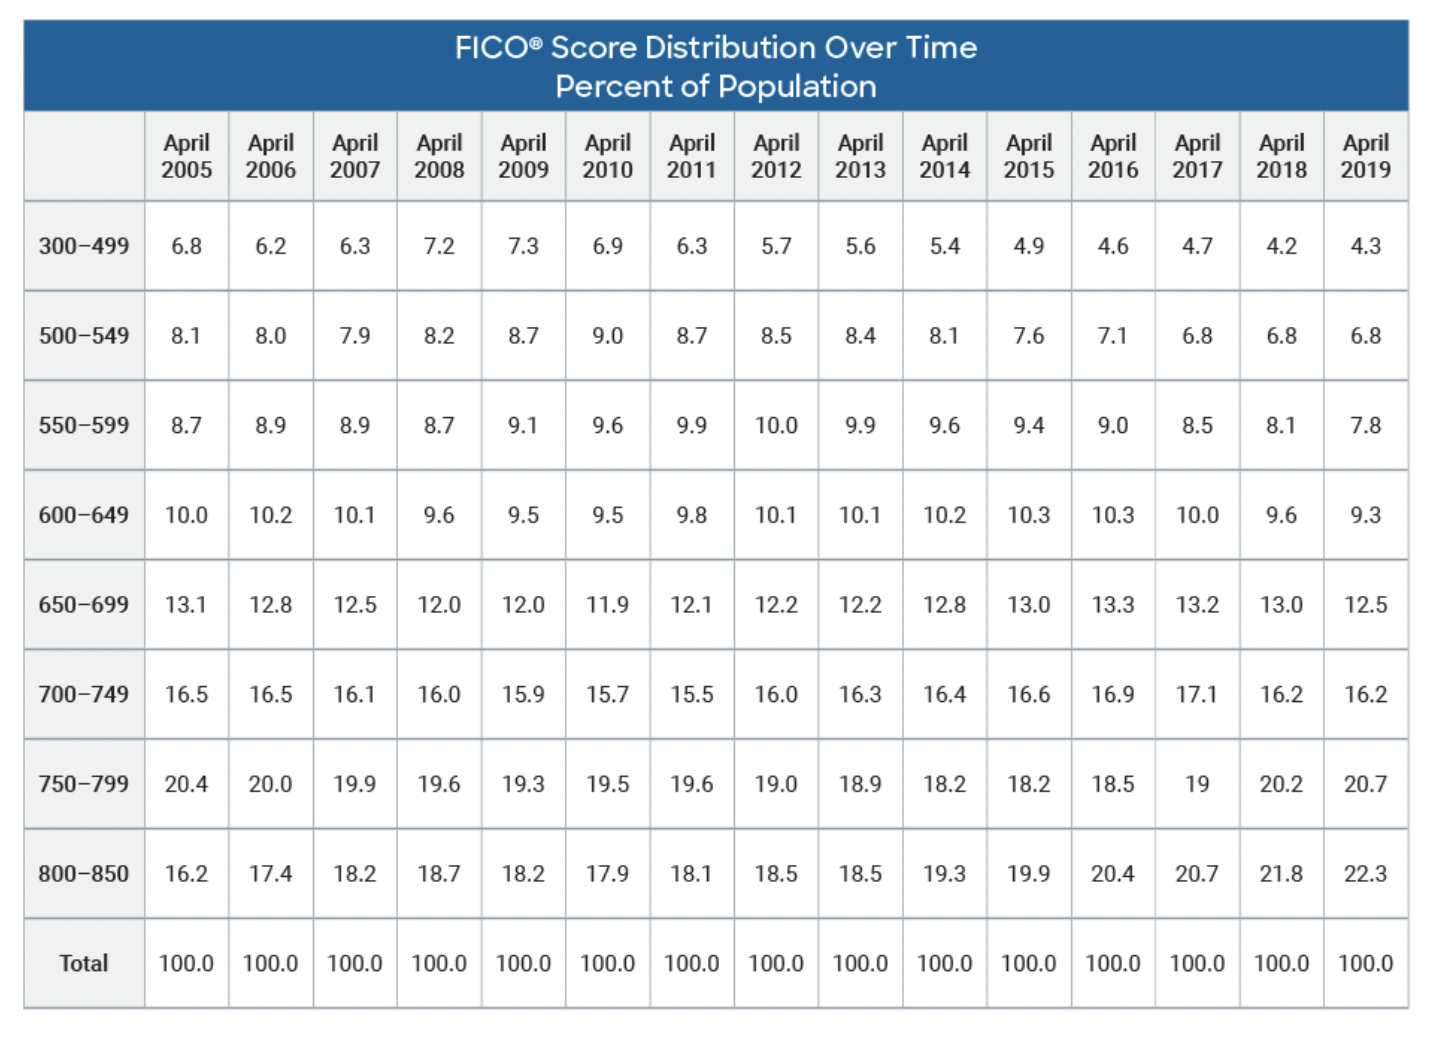 FICO Score Distribution Over Time